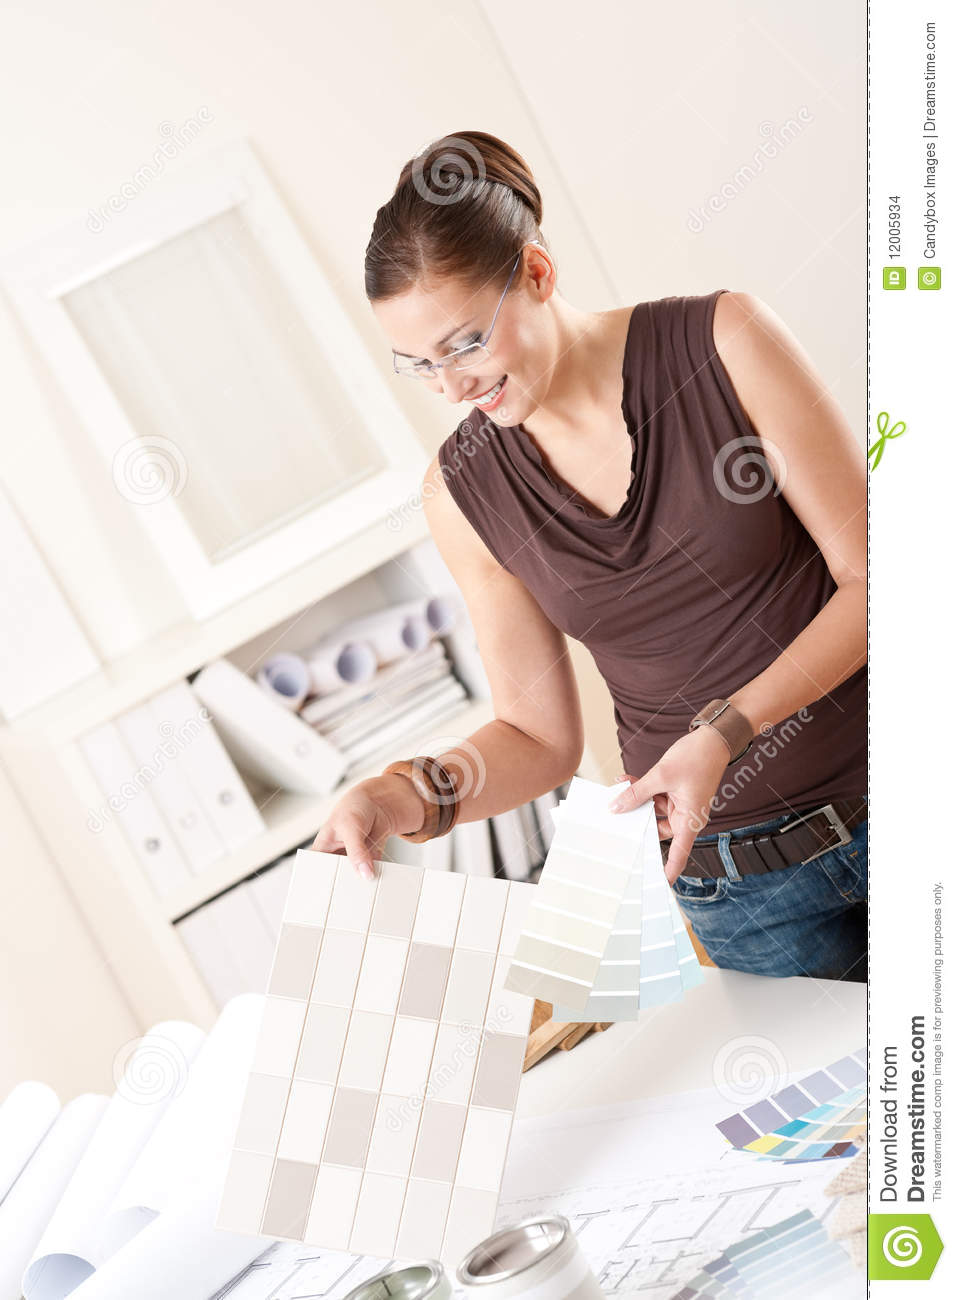 Female Interior Designer Choosing Color Of Tiles Stock